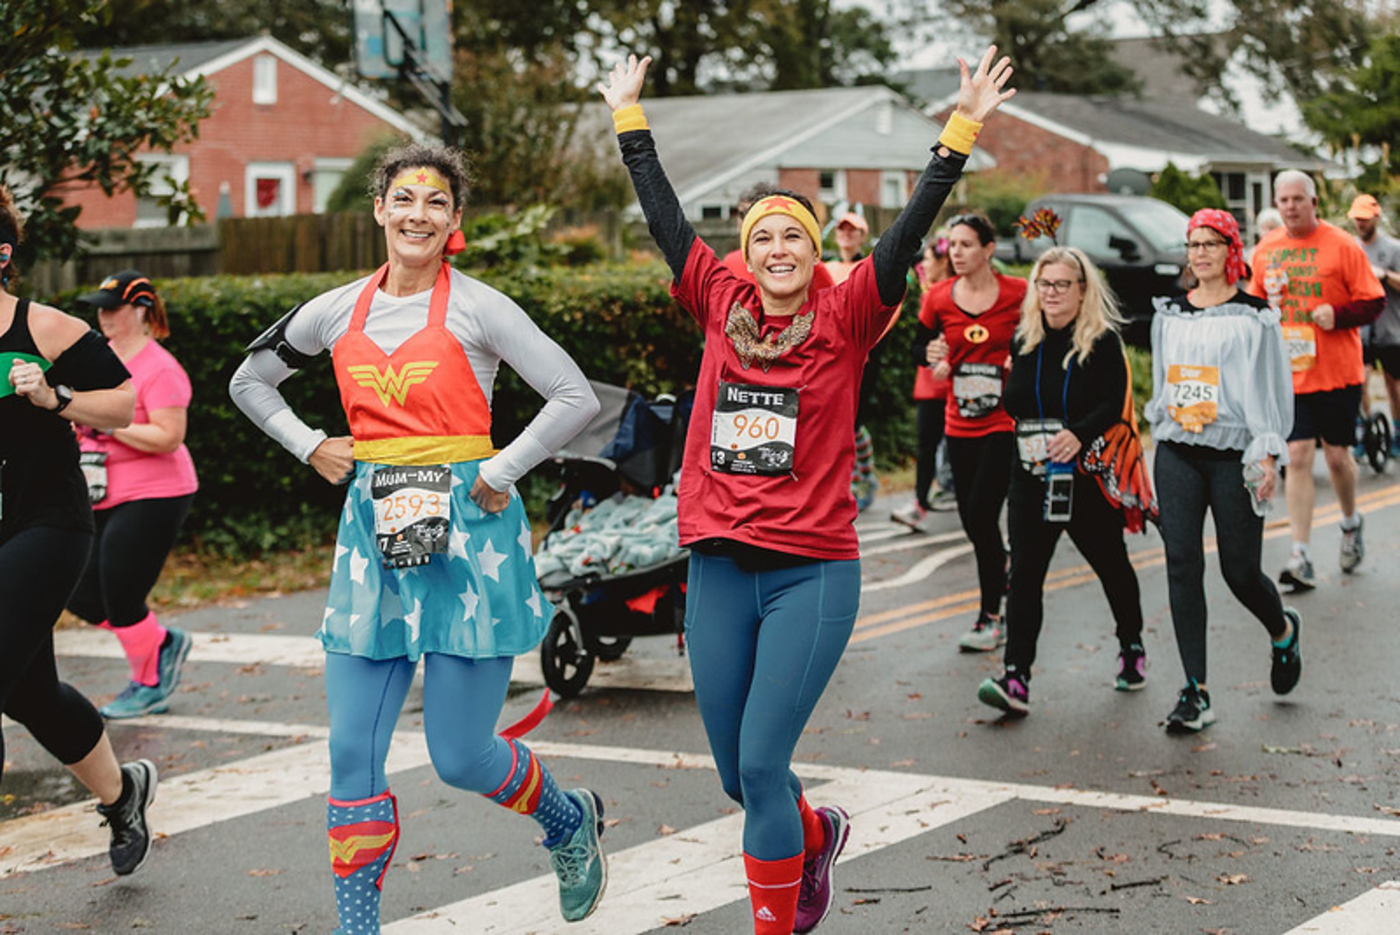 Anthem Wicked 10K presented by Bon Secours in Motion